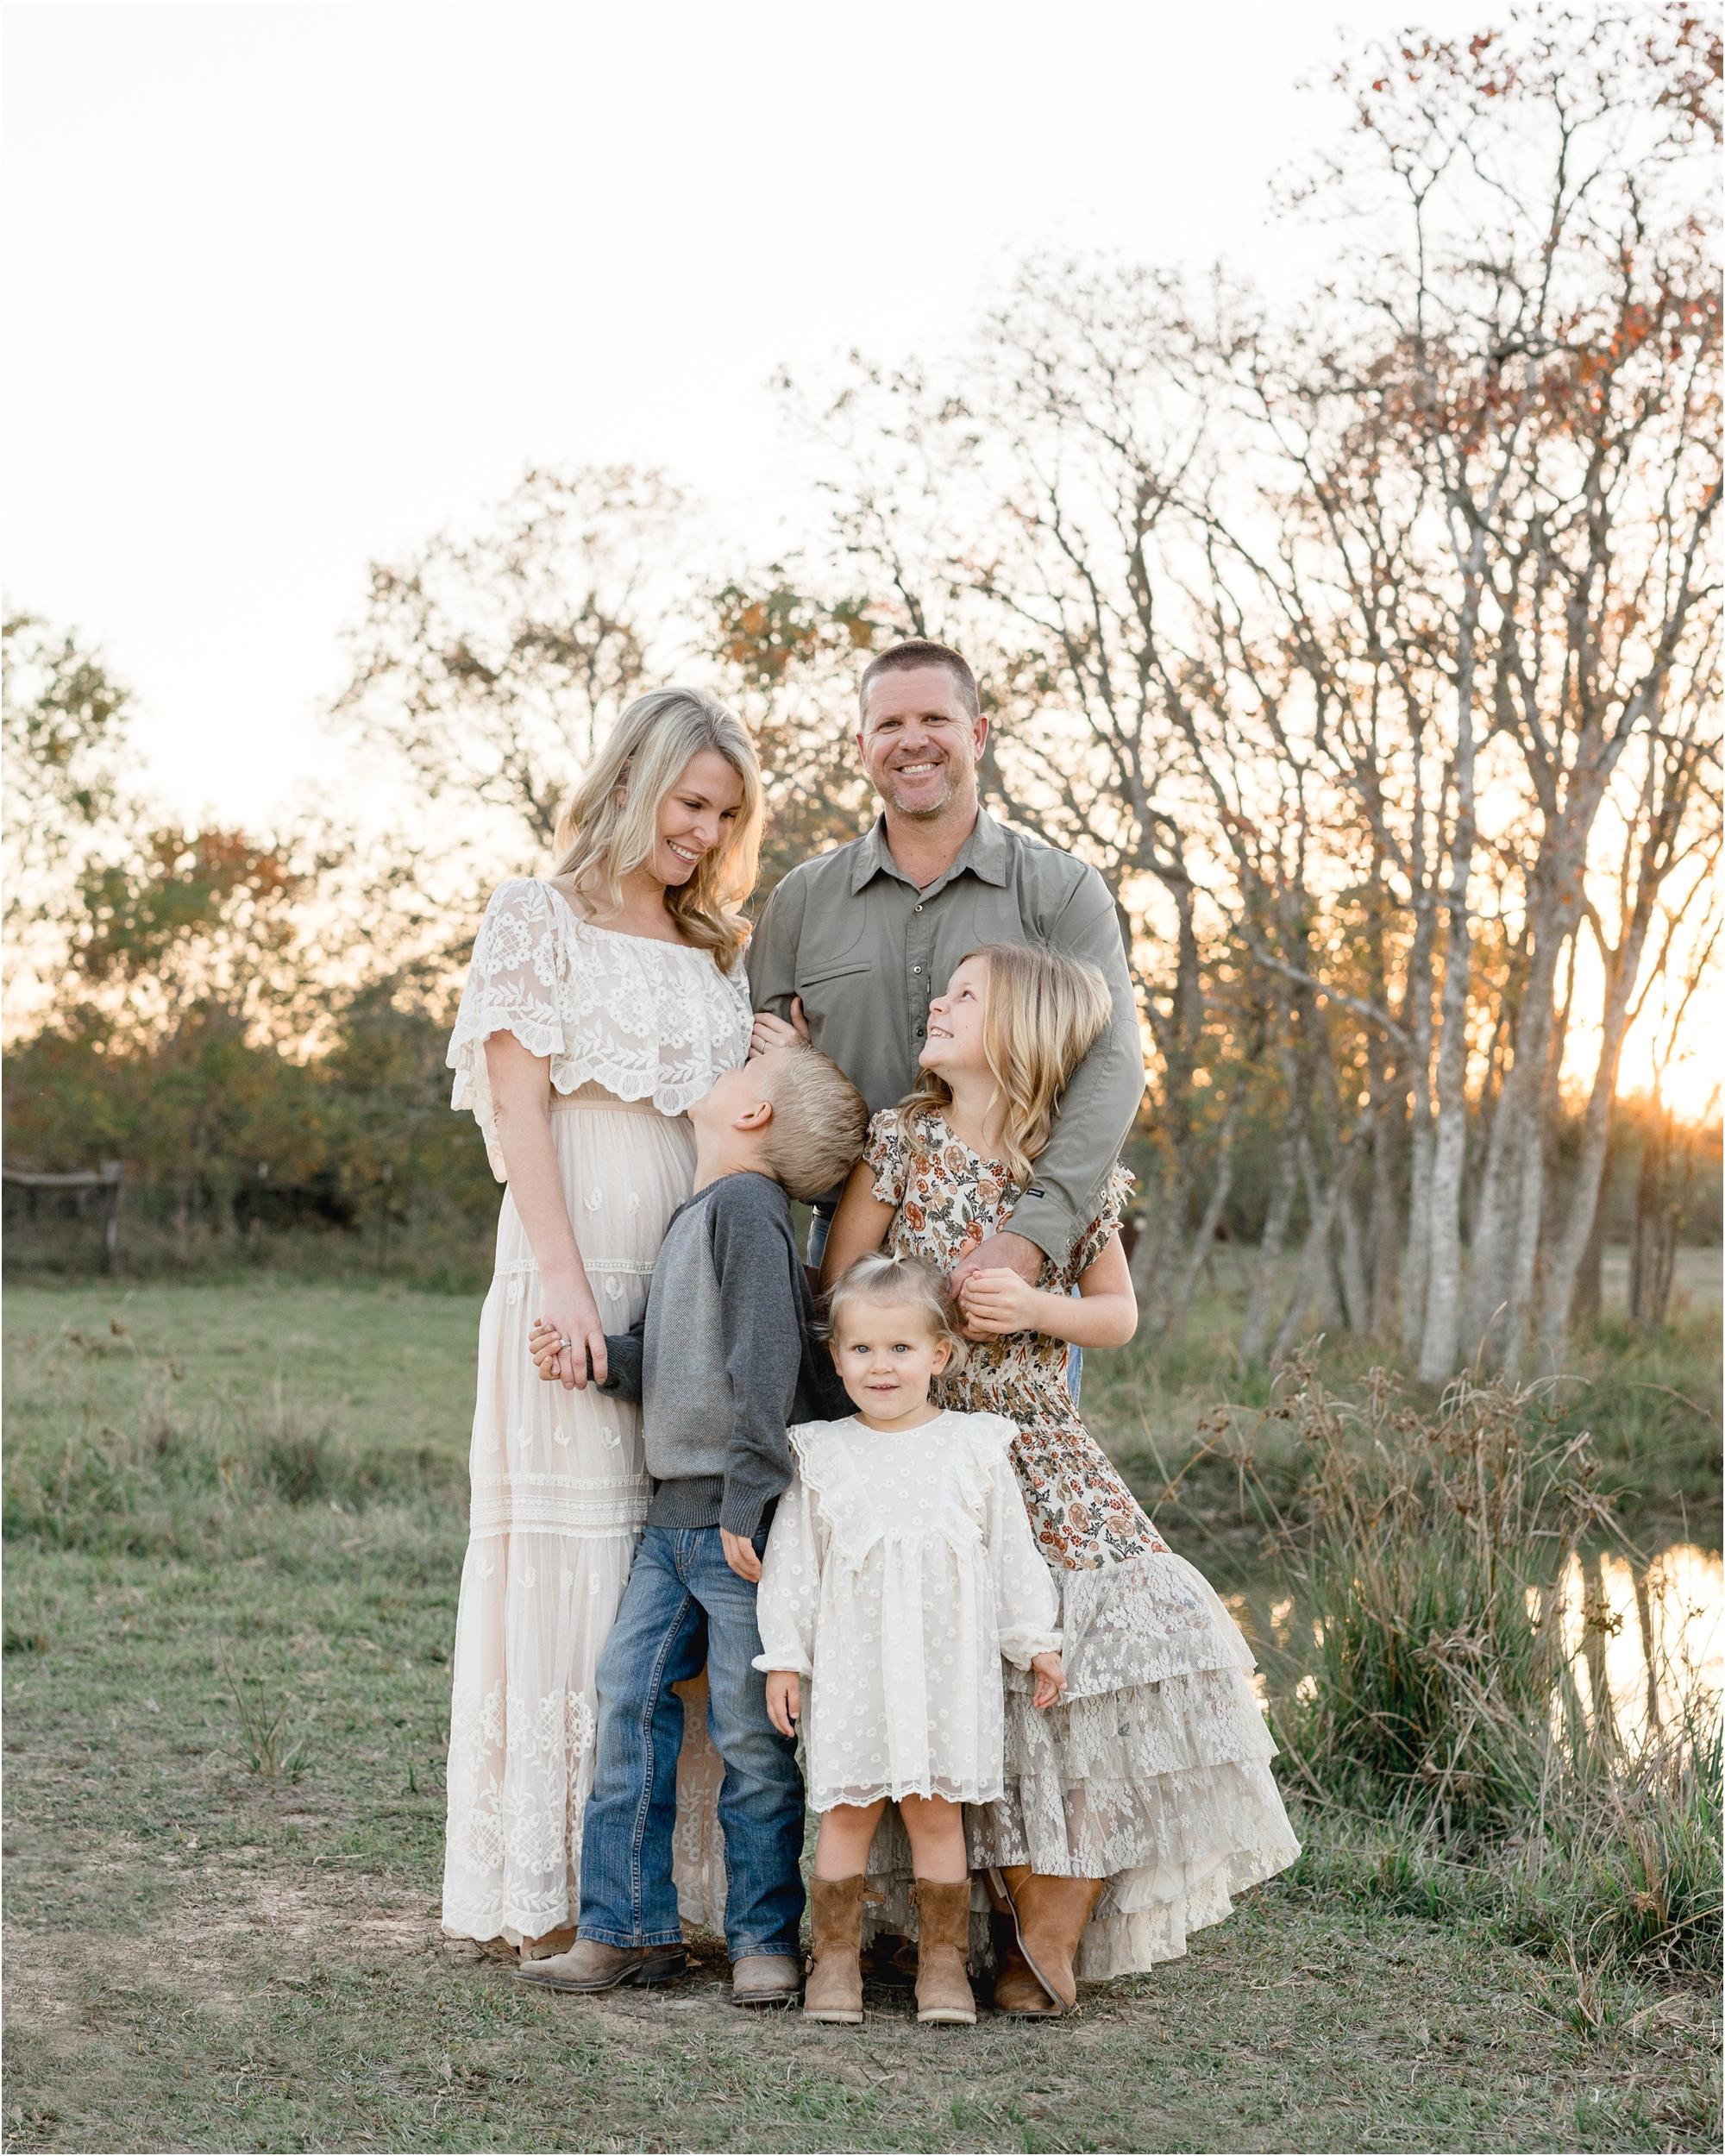 Sweet image of family of five with kids looking at Mom during sunset family session by Katy family photographer, Lifetime of Clicks Photography.